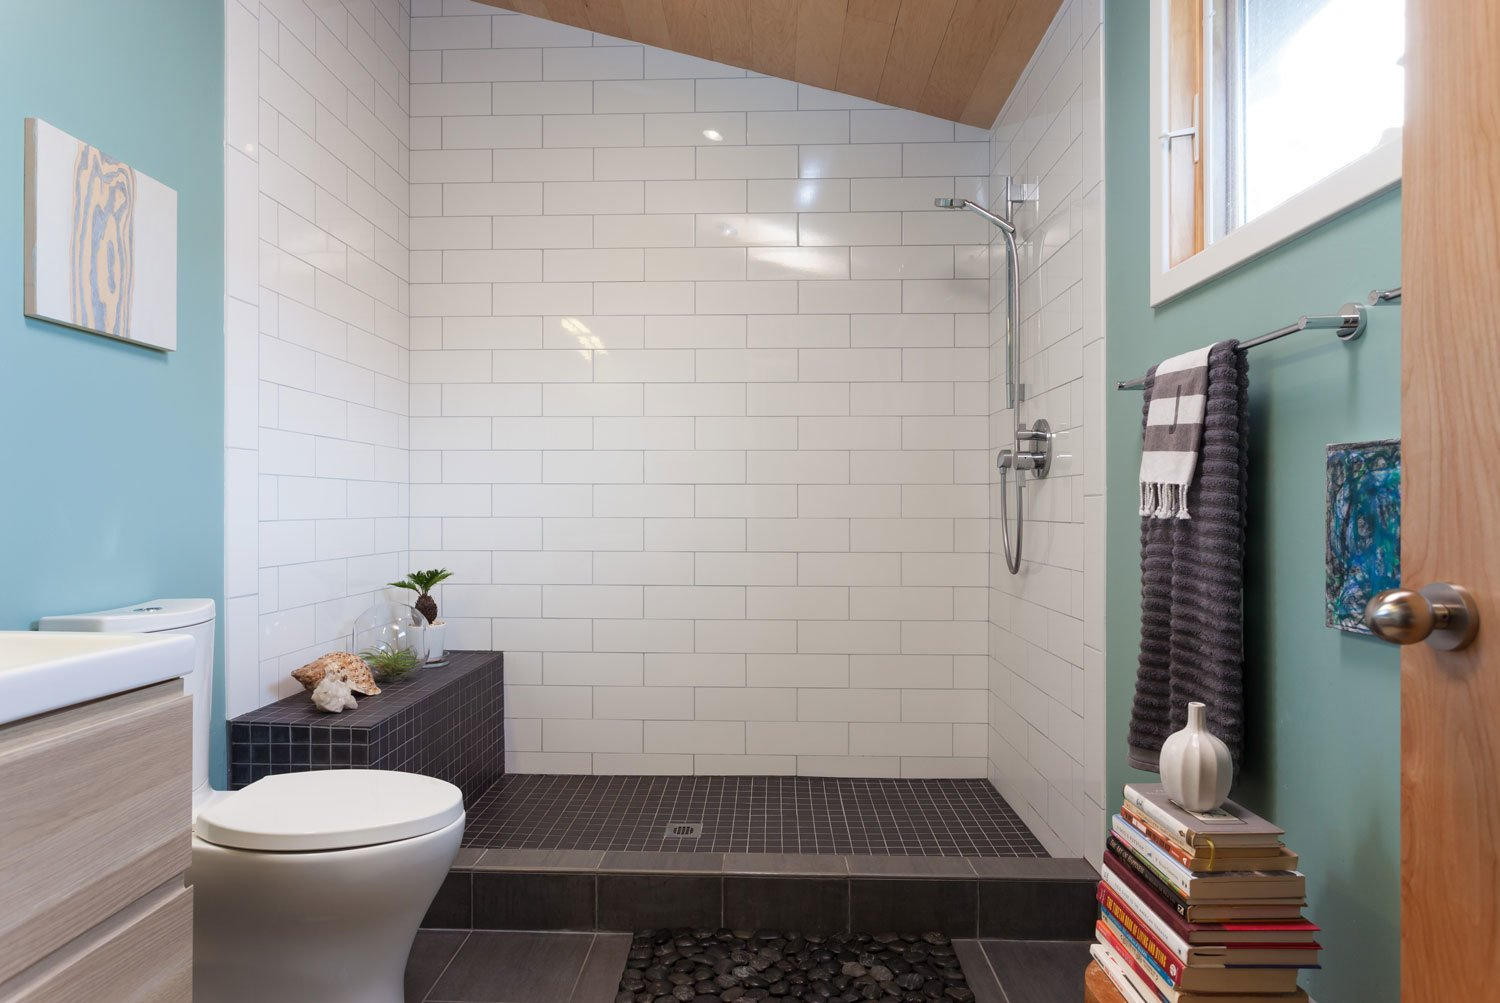 Bath Room, Open Shower, Two Piece Toilet, and Subway Tile Wall The bathroom features white and black tile and a small rock bed.  Sunny Berkeley Bungalow Renovation by Allie Weiss